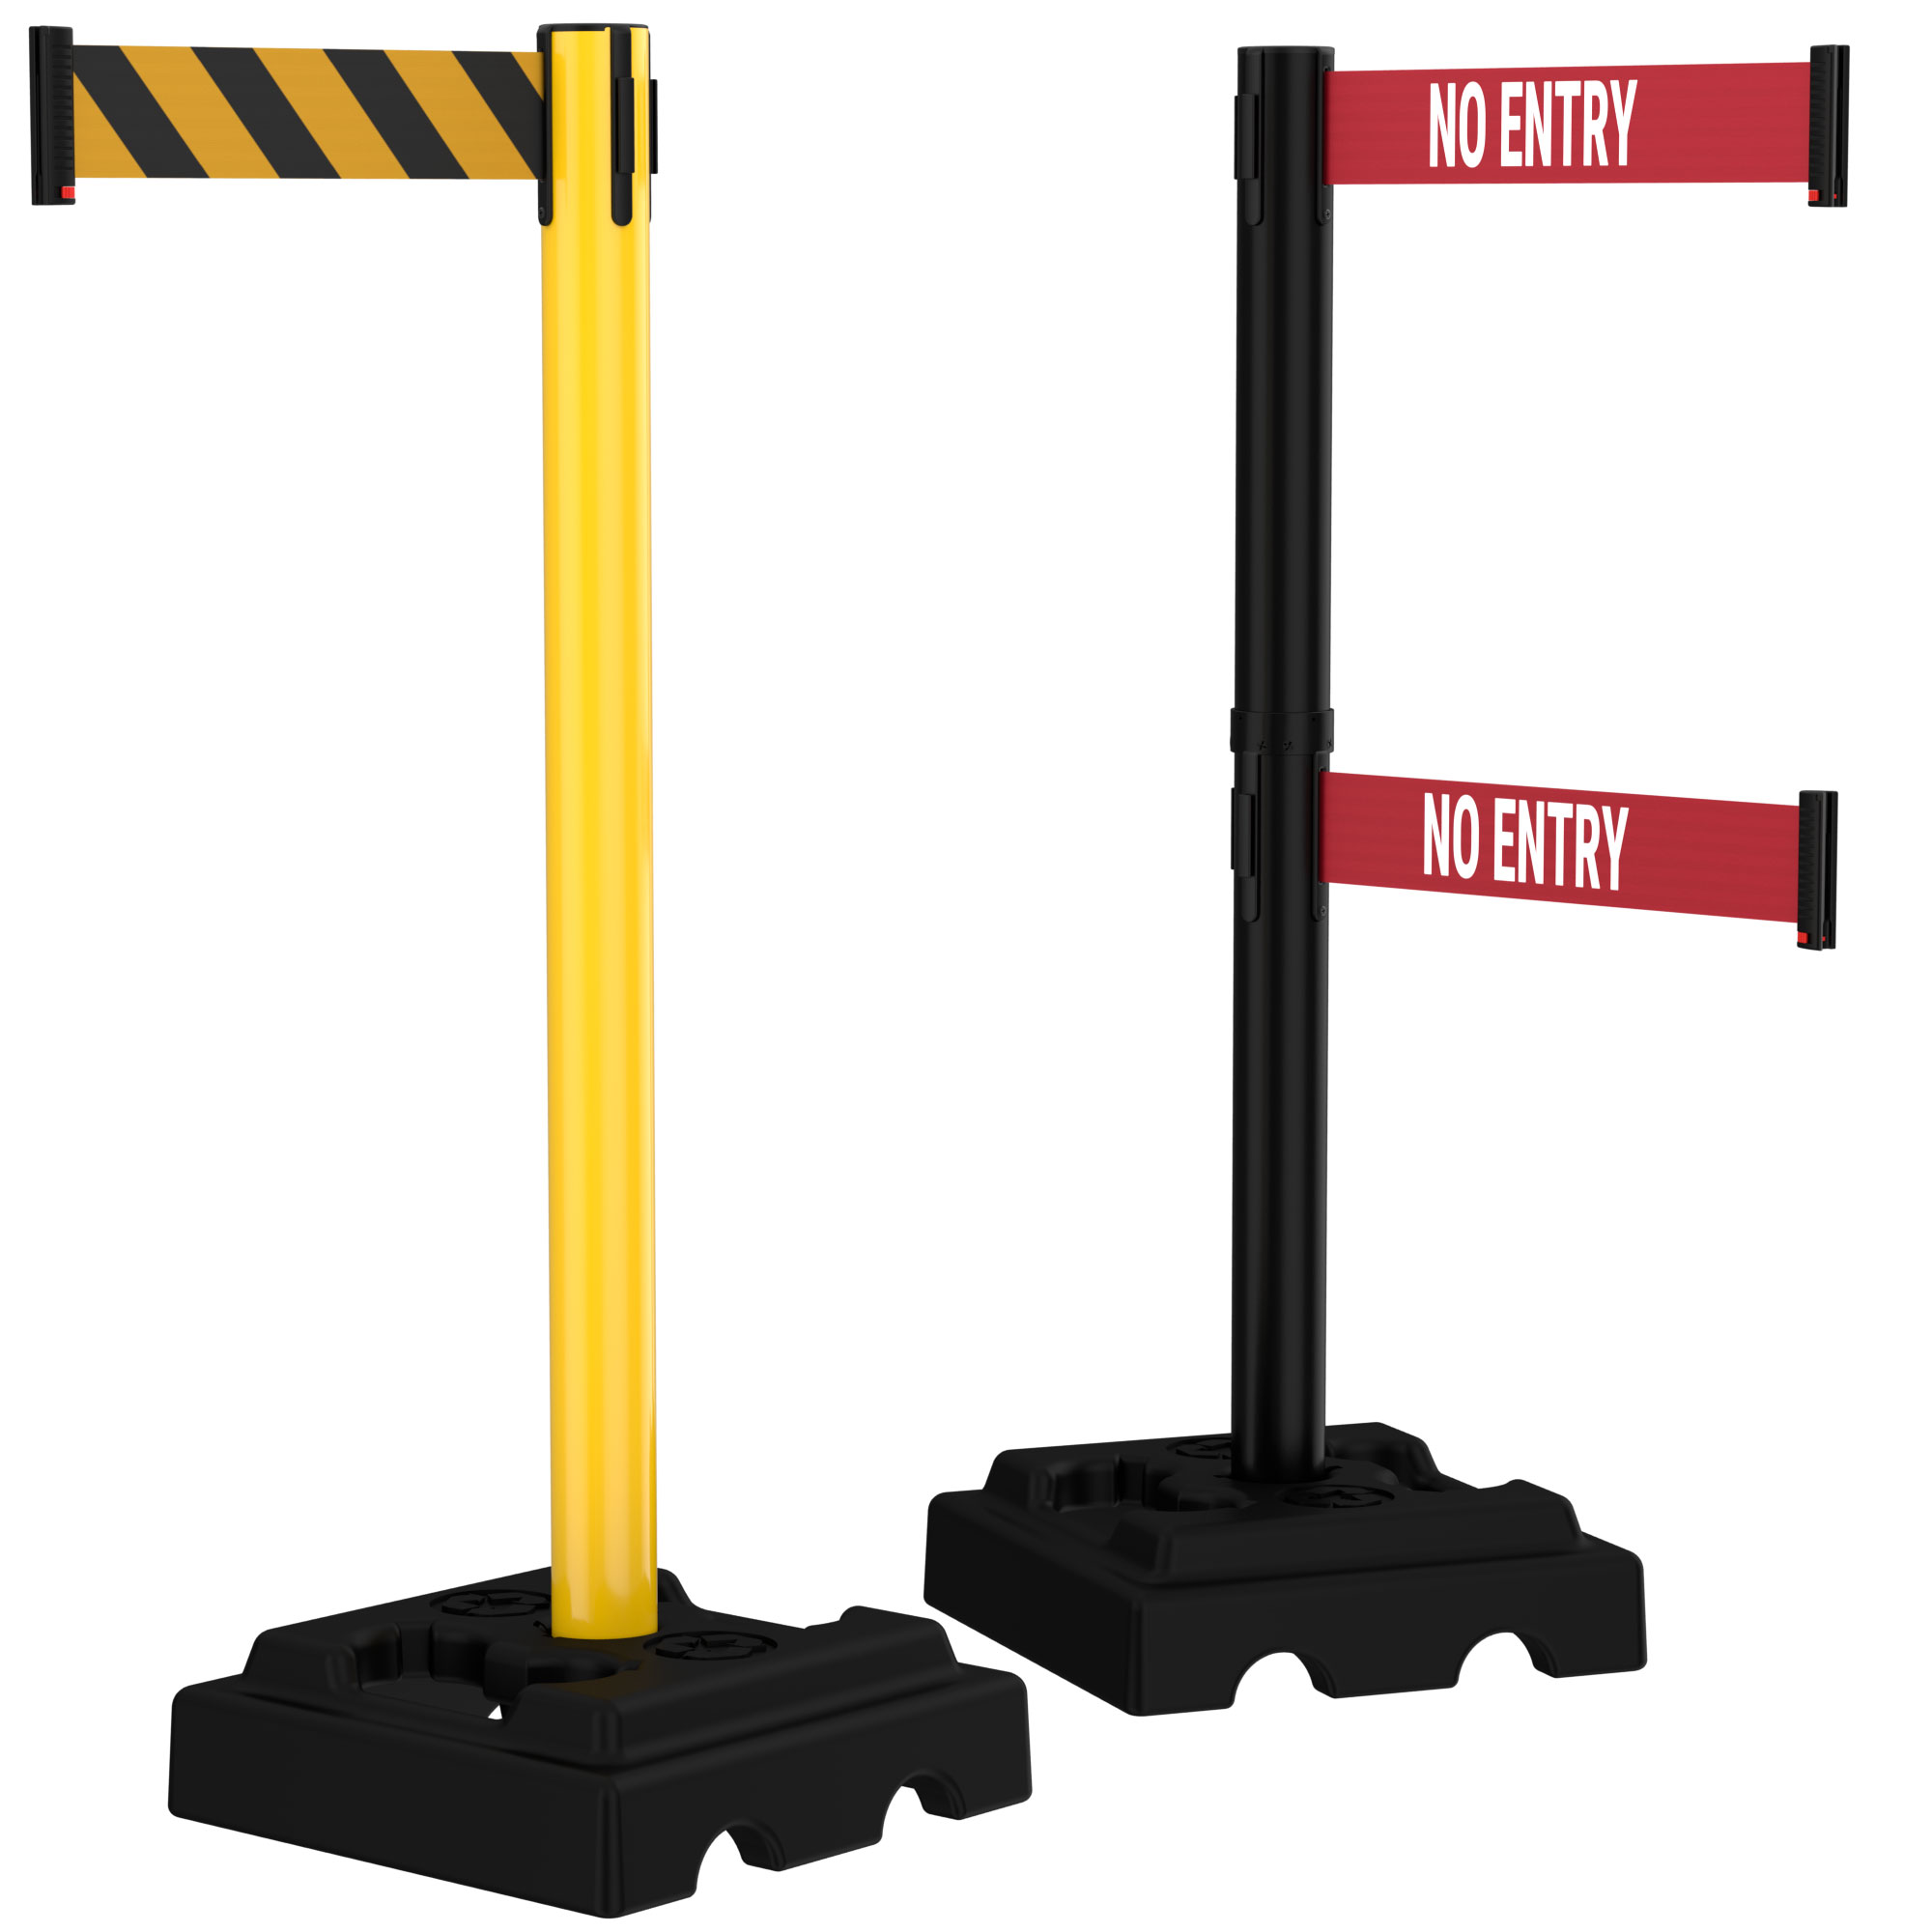 15' Dual Line Retractable Belt Outdoor Utility Crowd Control Safety Stanchions